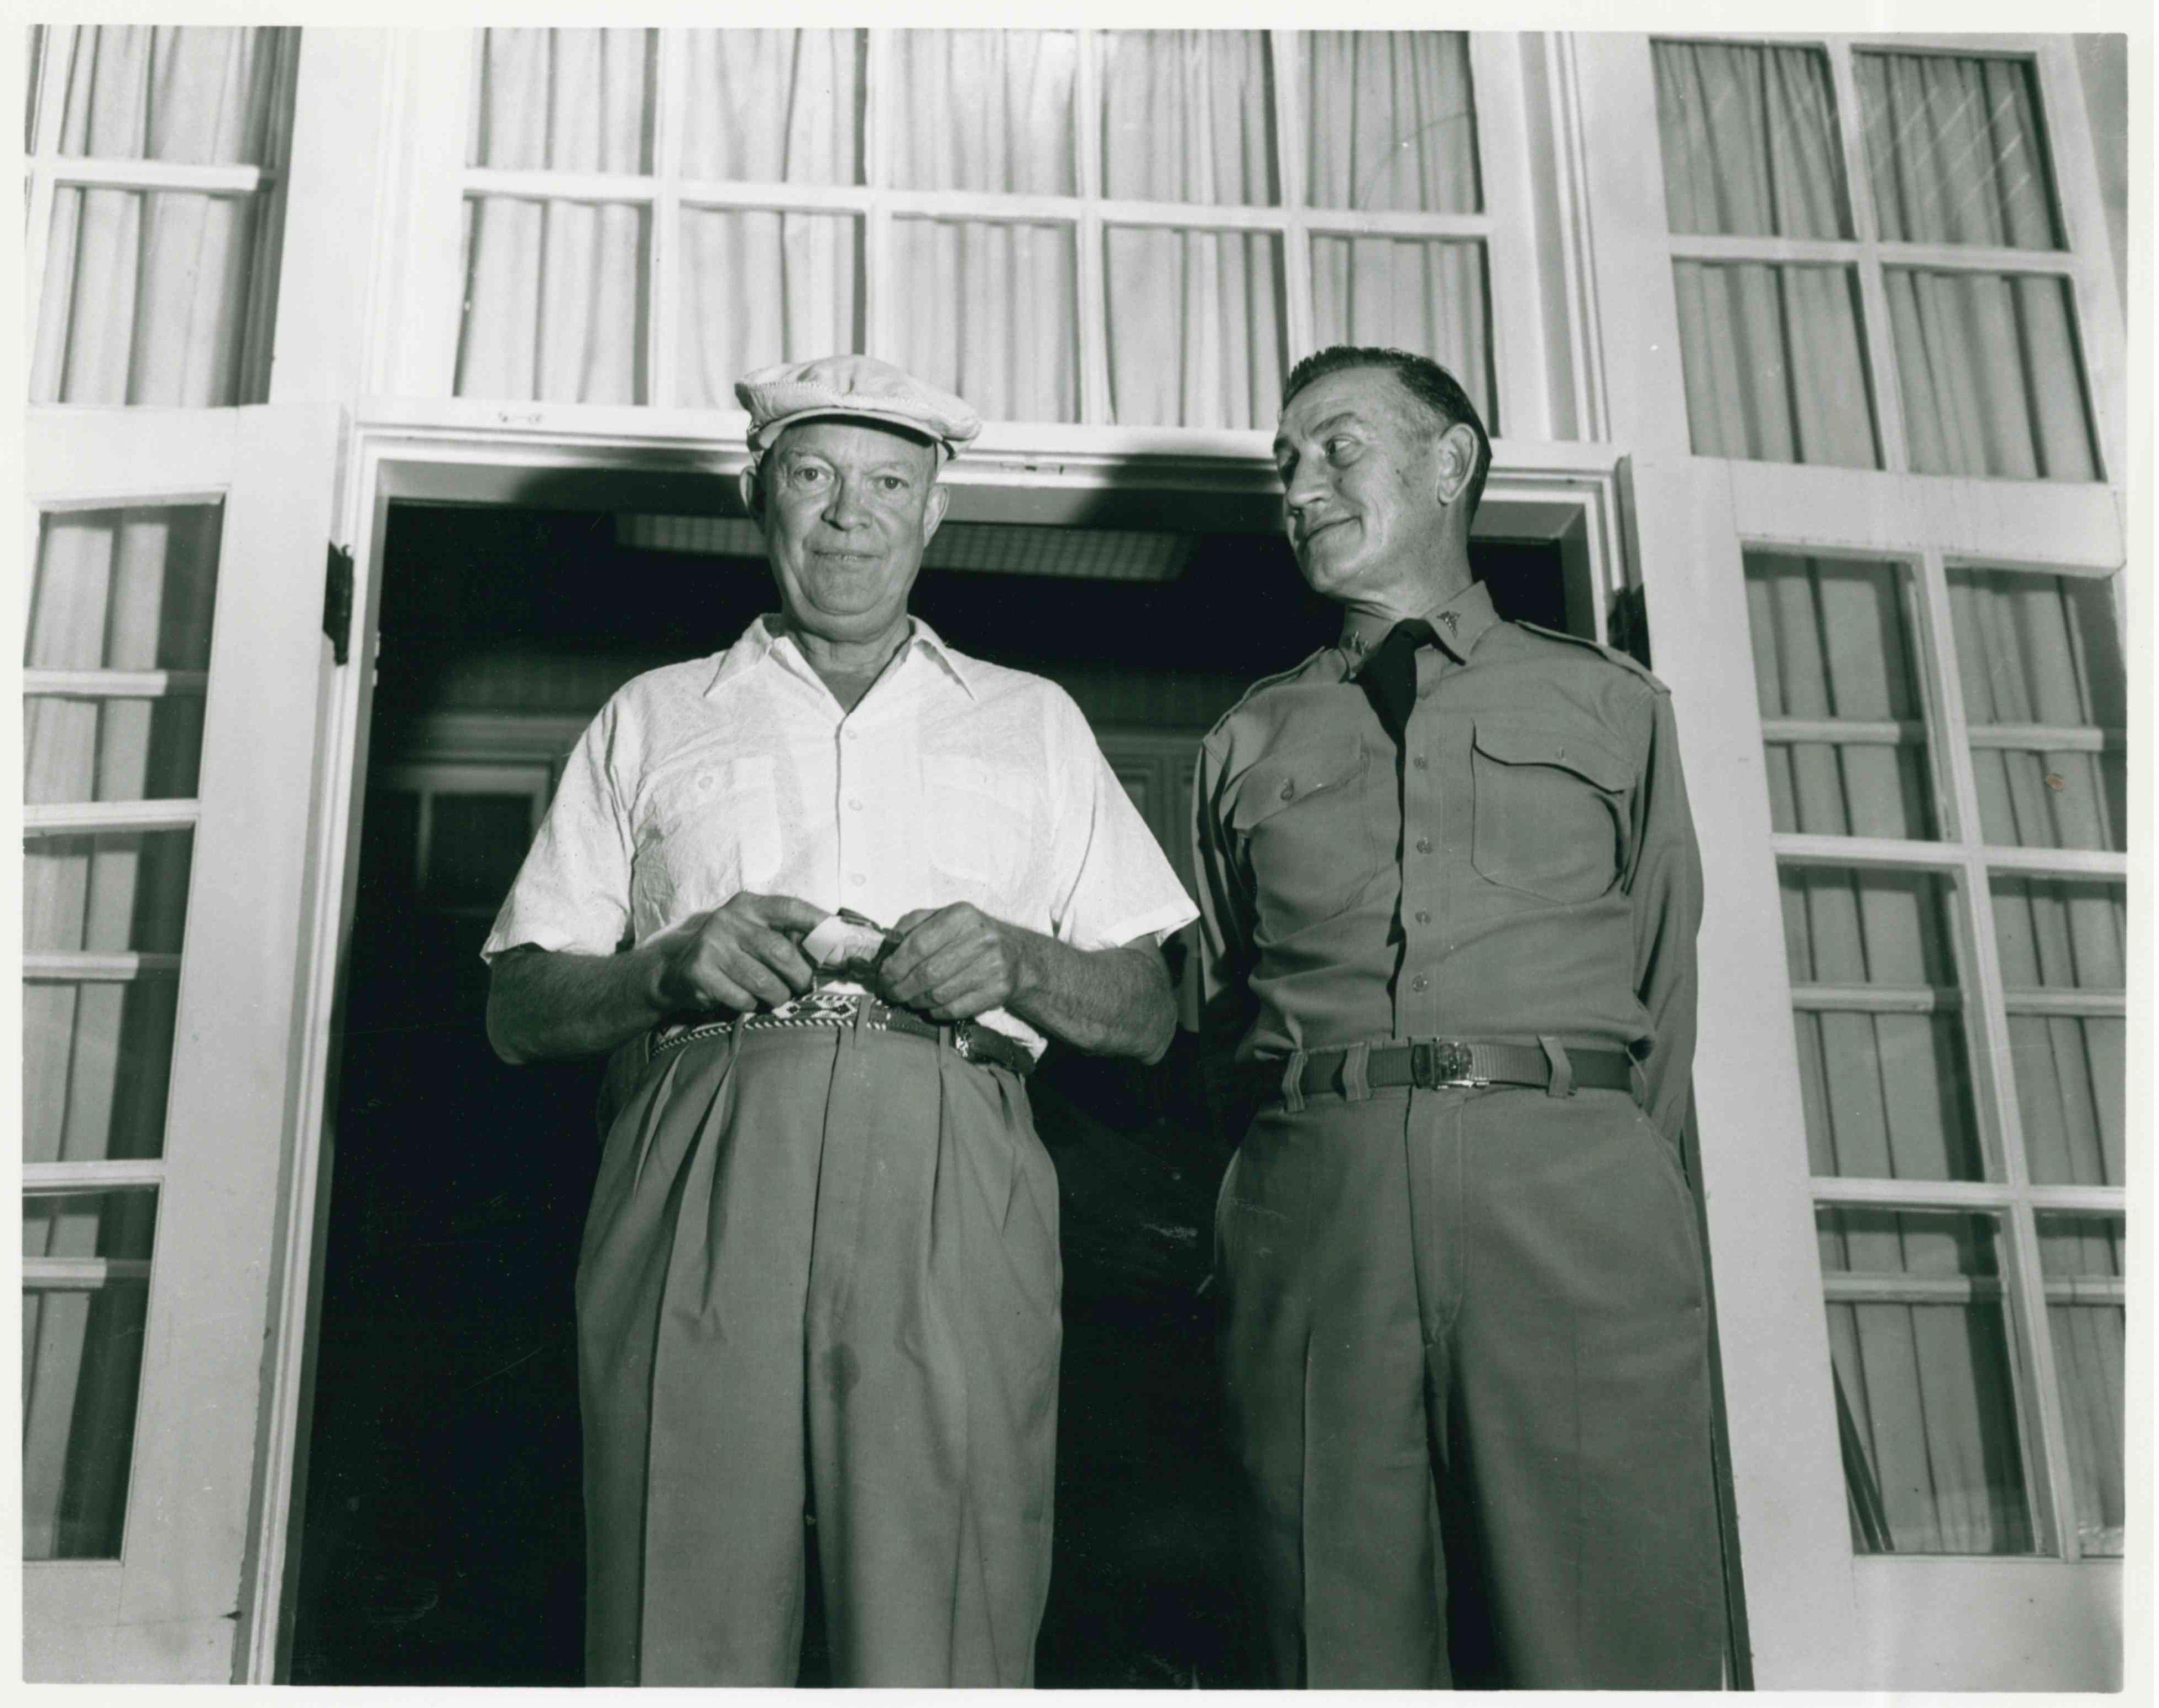 Ike Prior to Heart Attack